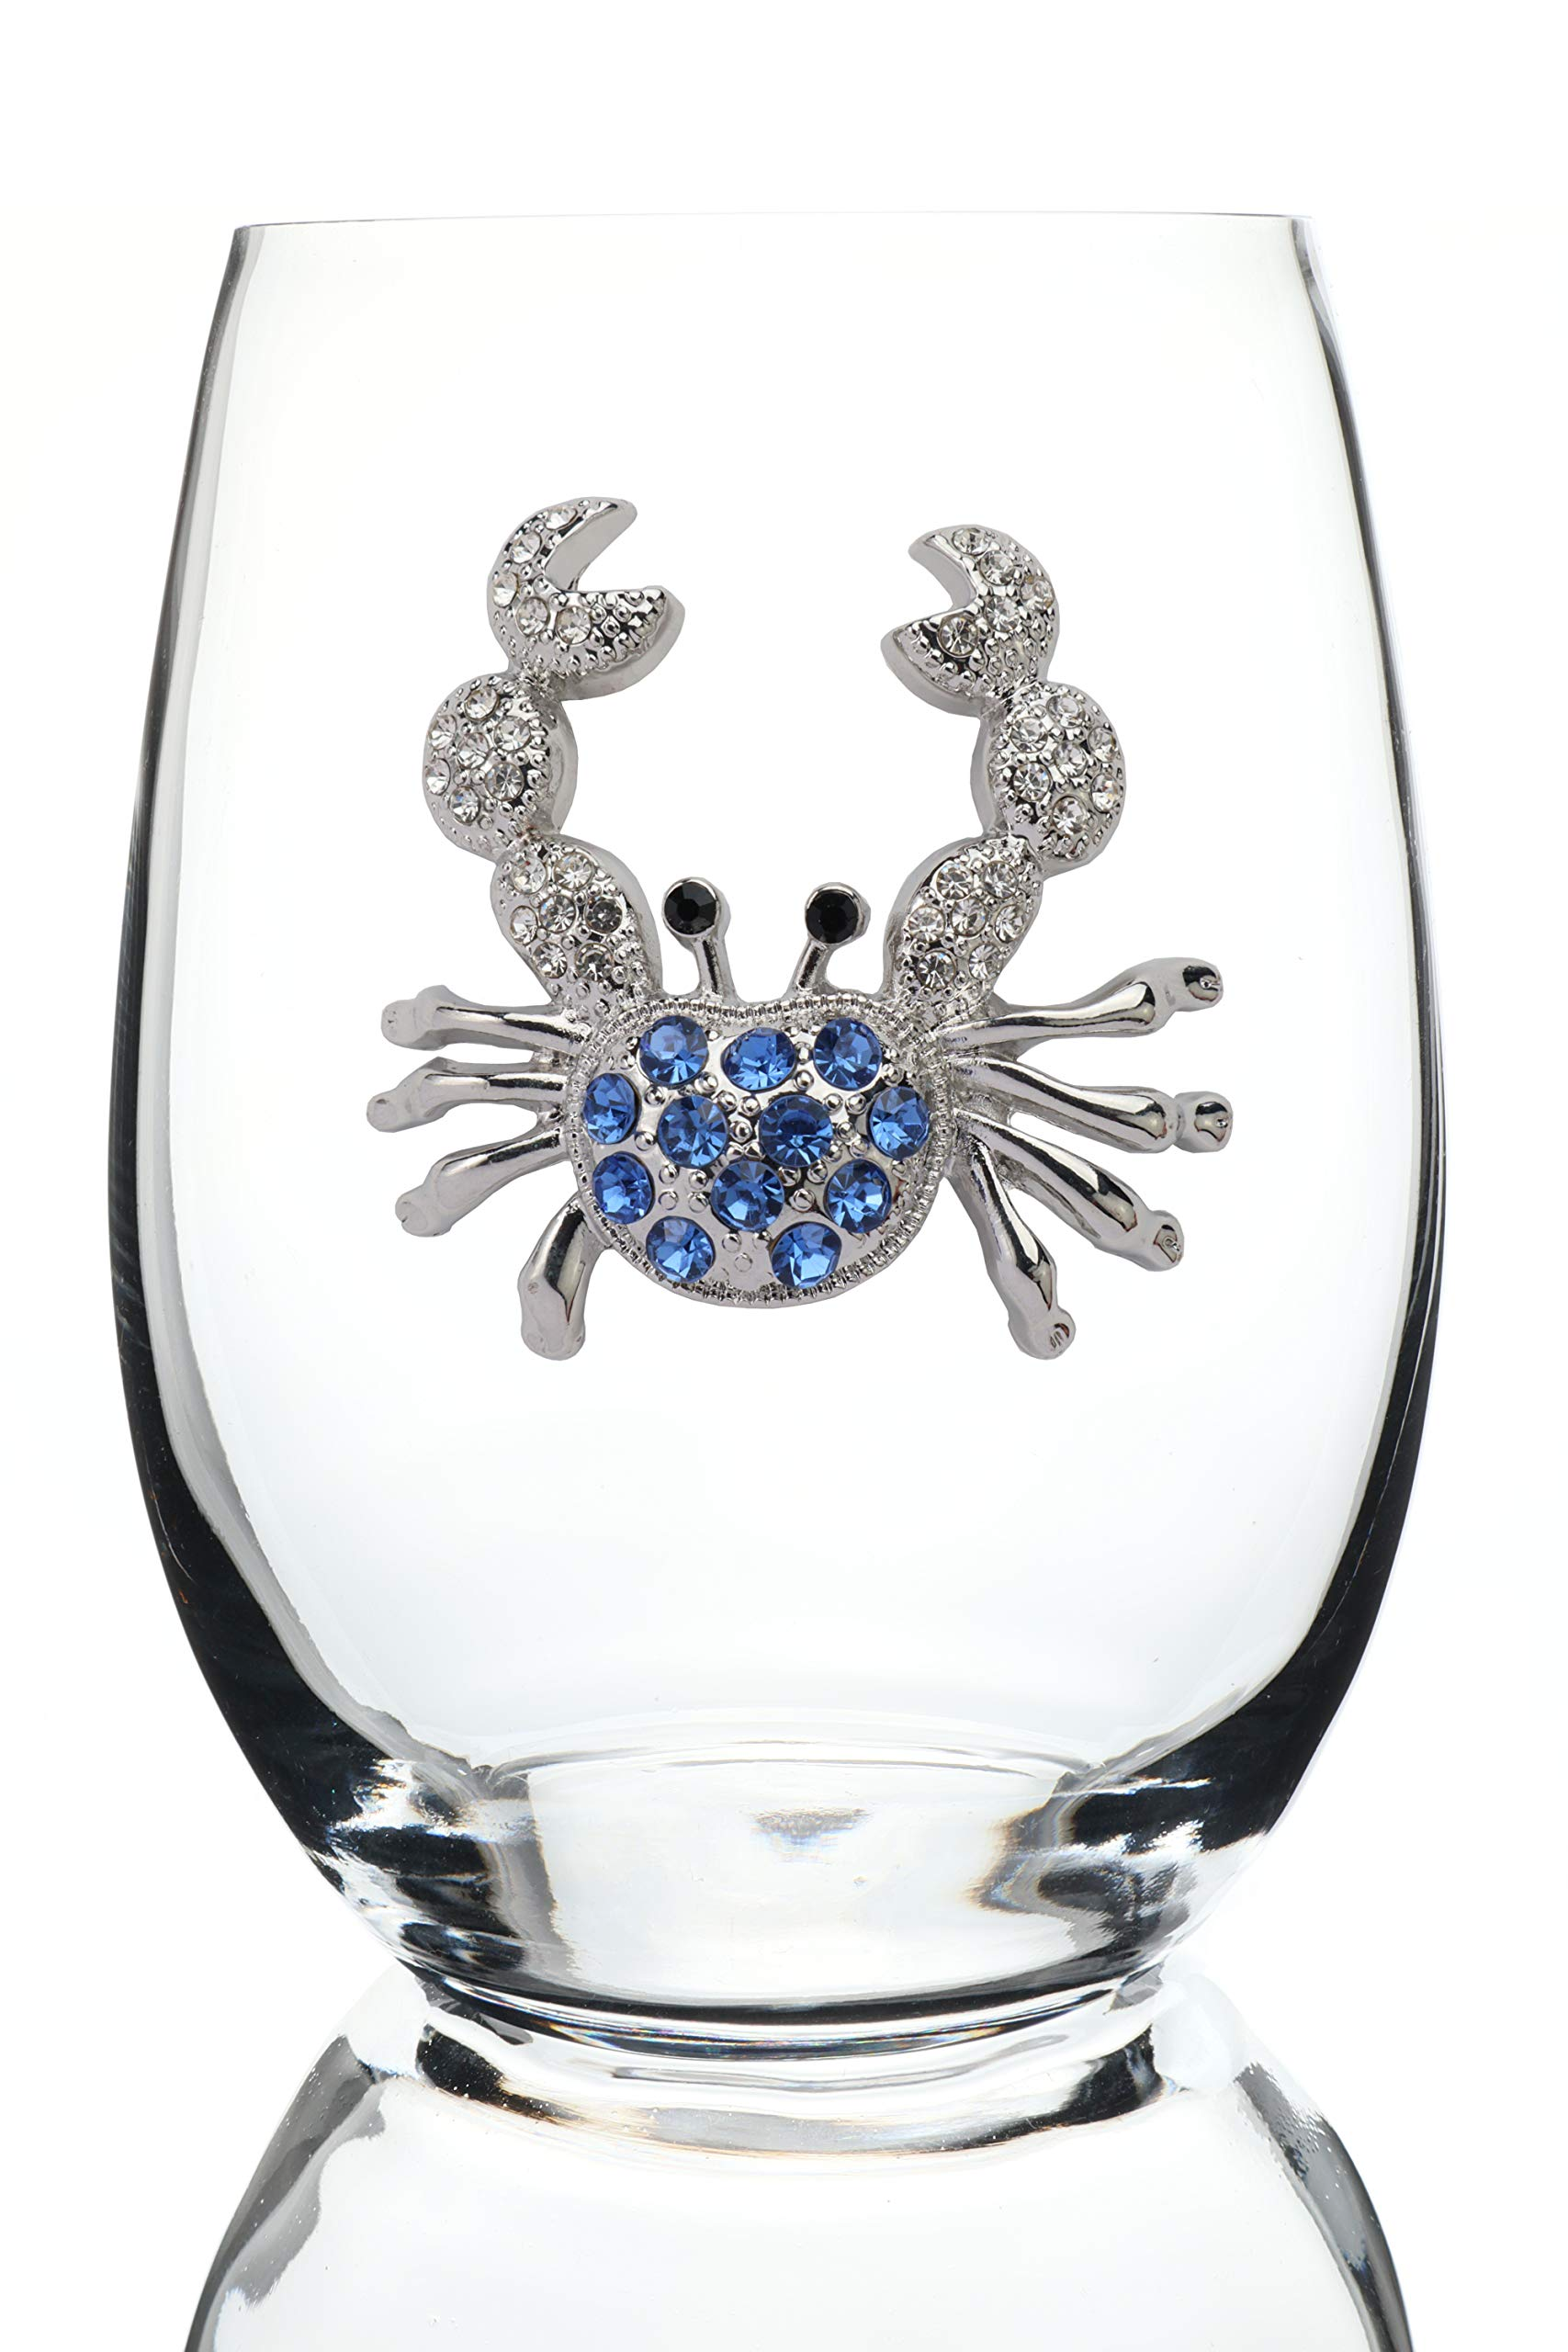 THE QUEENS' JEWELS Blue Crab Jeweled Stemless Wine Glass - Unique Gift for Women, Birthday, Cute, Fun, Not Painted, Decorated, Bling, Bedazzled, Rhinestone